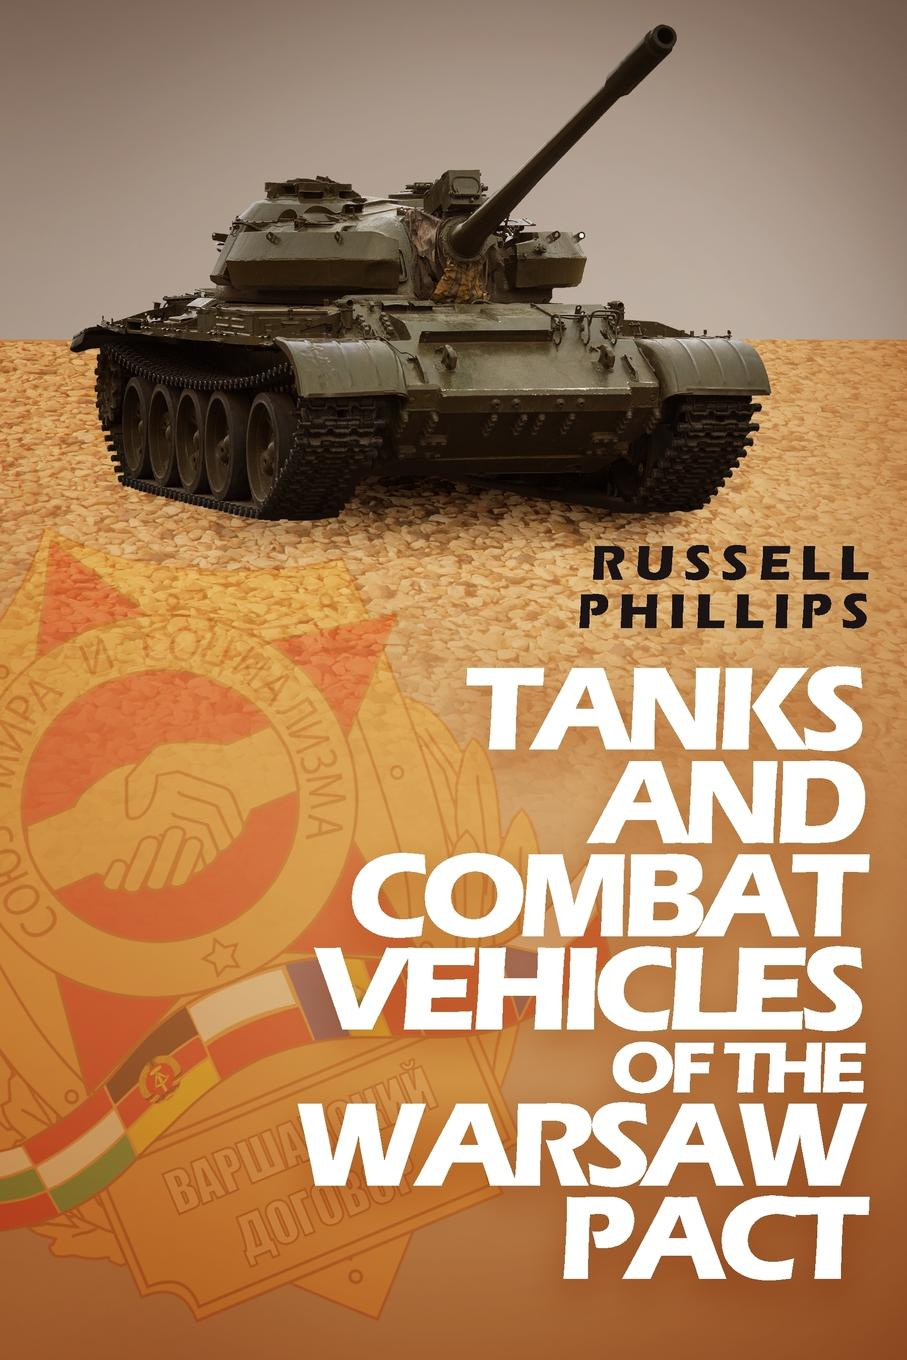 Russell Phillips Tanks and Combat Vehicles of the Warsaw Pact недорго, оригинальная цена